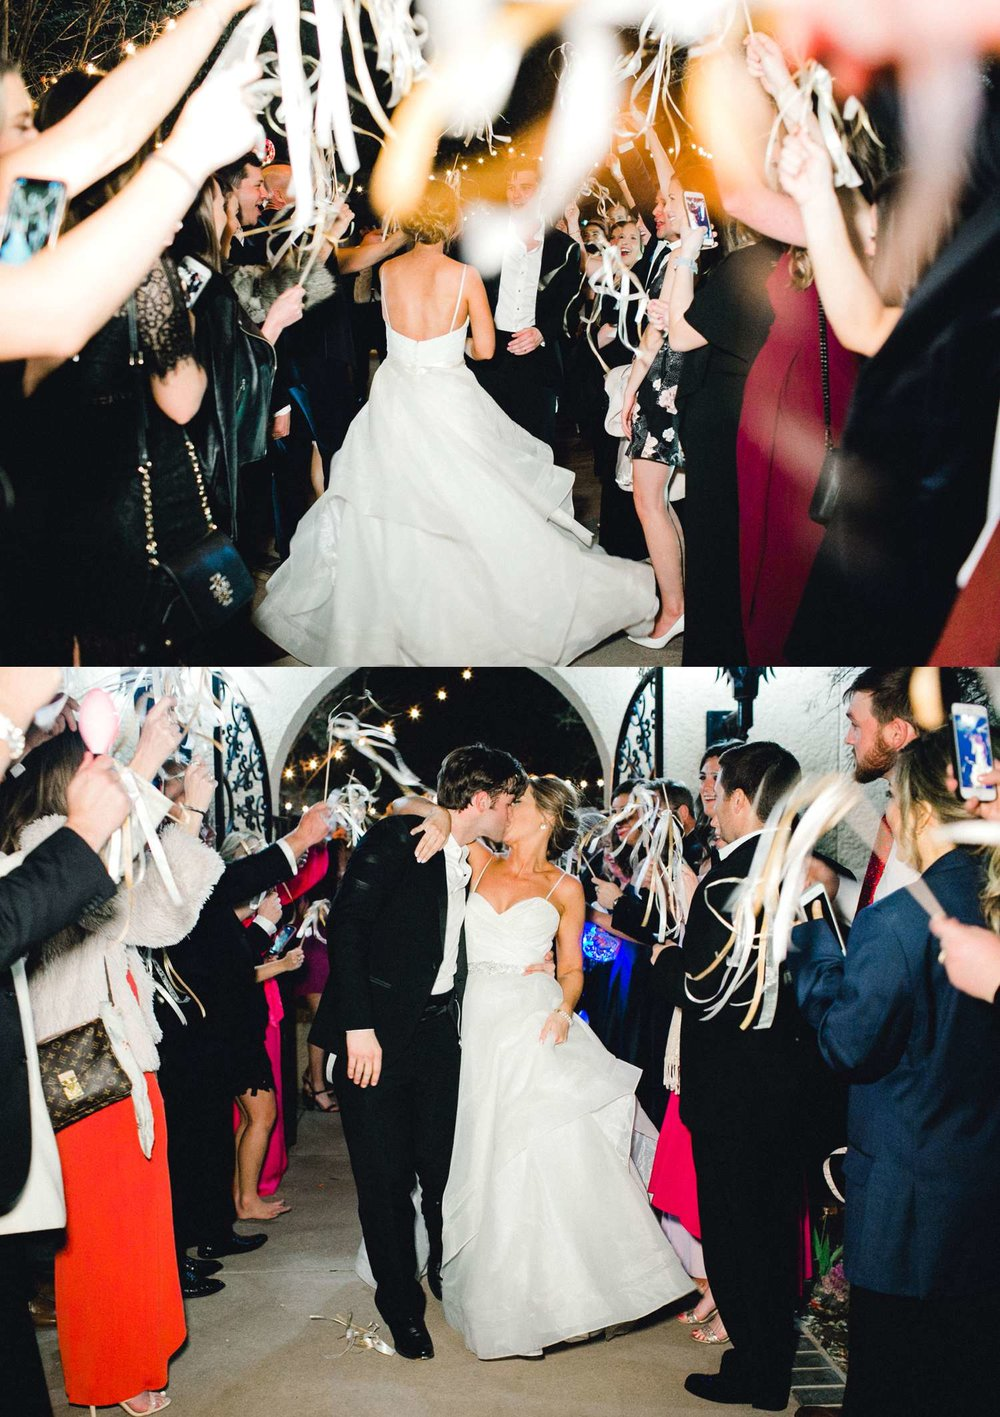 MARLEE+LLOYD+MORGAN+ALLEEJ+TEXAS+TECH+MERKET+ALUMNI+WEDDINGS+LUBBOCK+WEST+TABLE+CLASSIC+SPAIN_0316.jpg